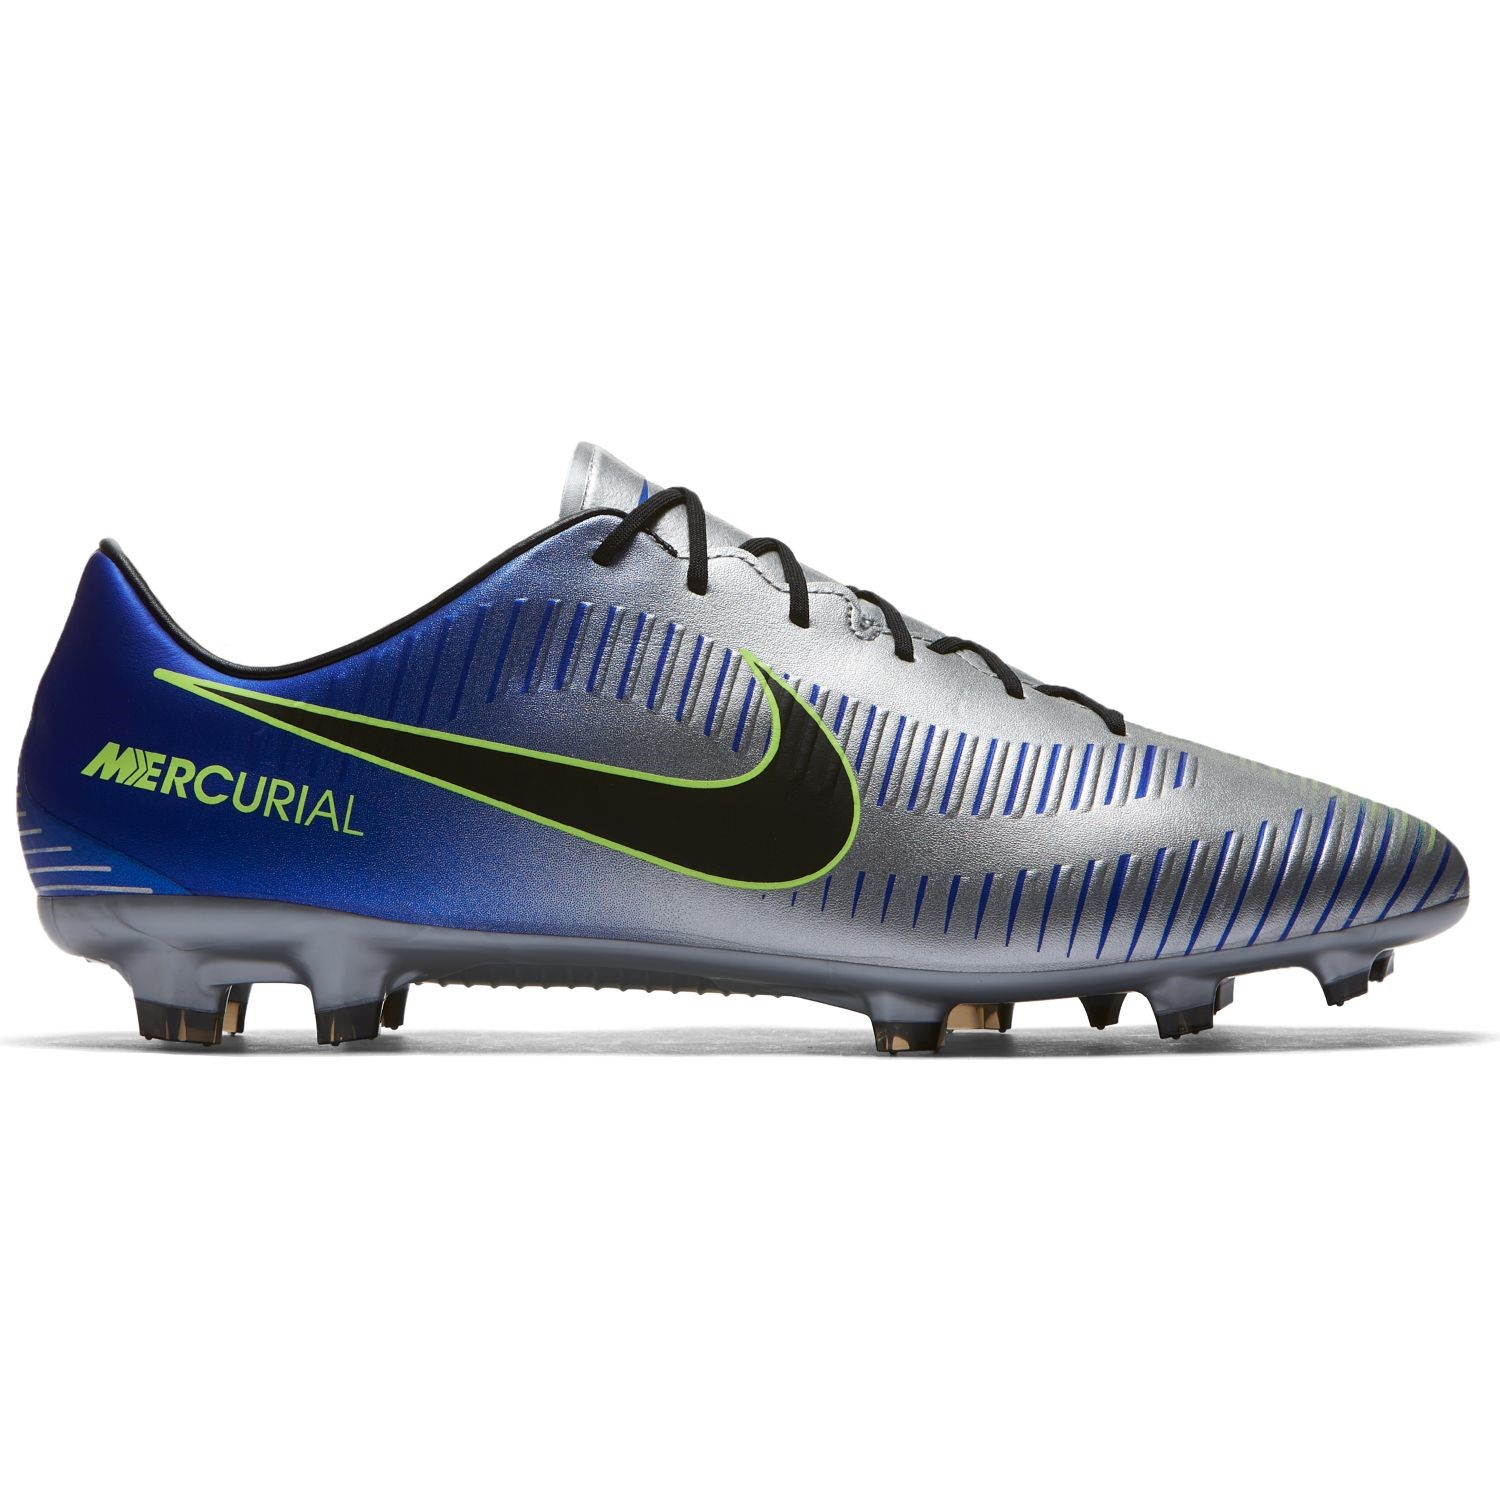 10b217131 Nike Mercurial Veloce III Neymar Jr FG - Mens Football Boots - Racer Blue  Black